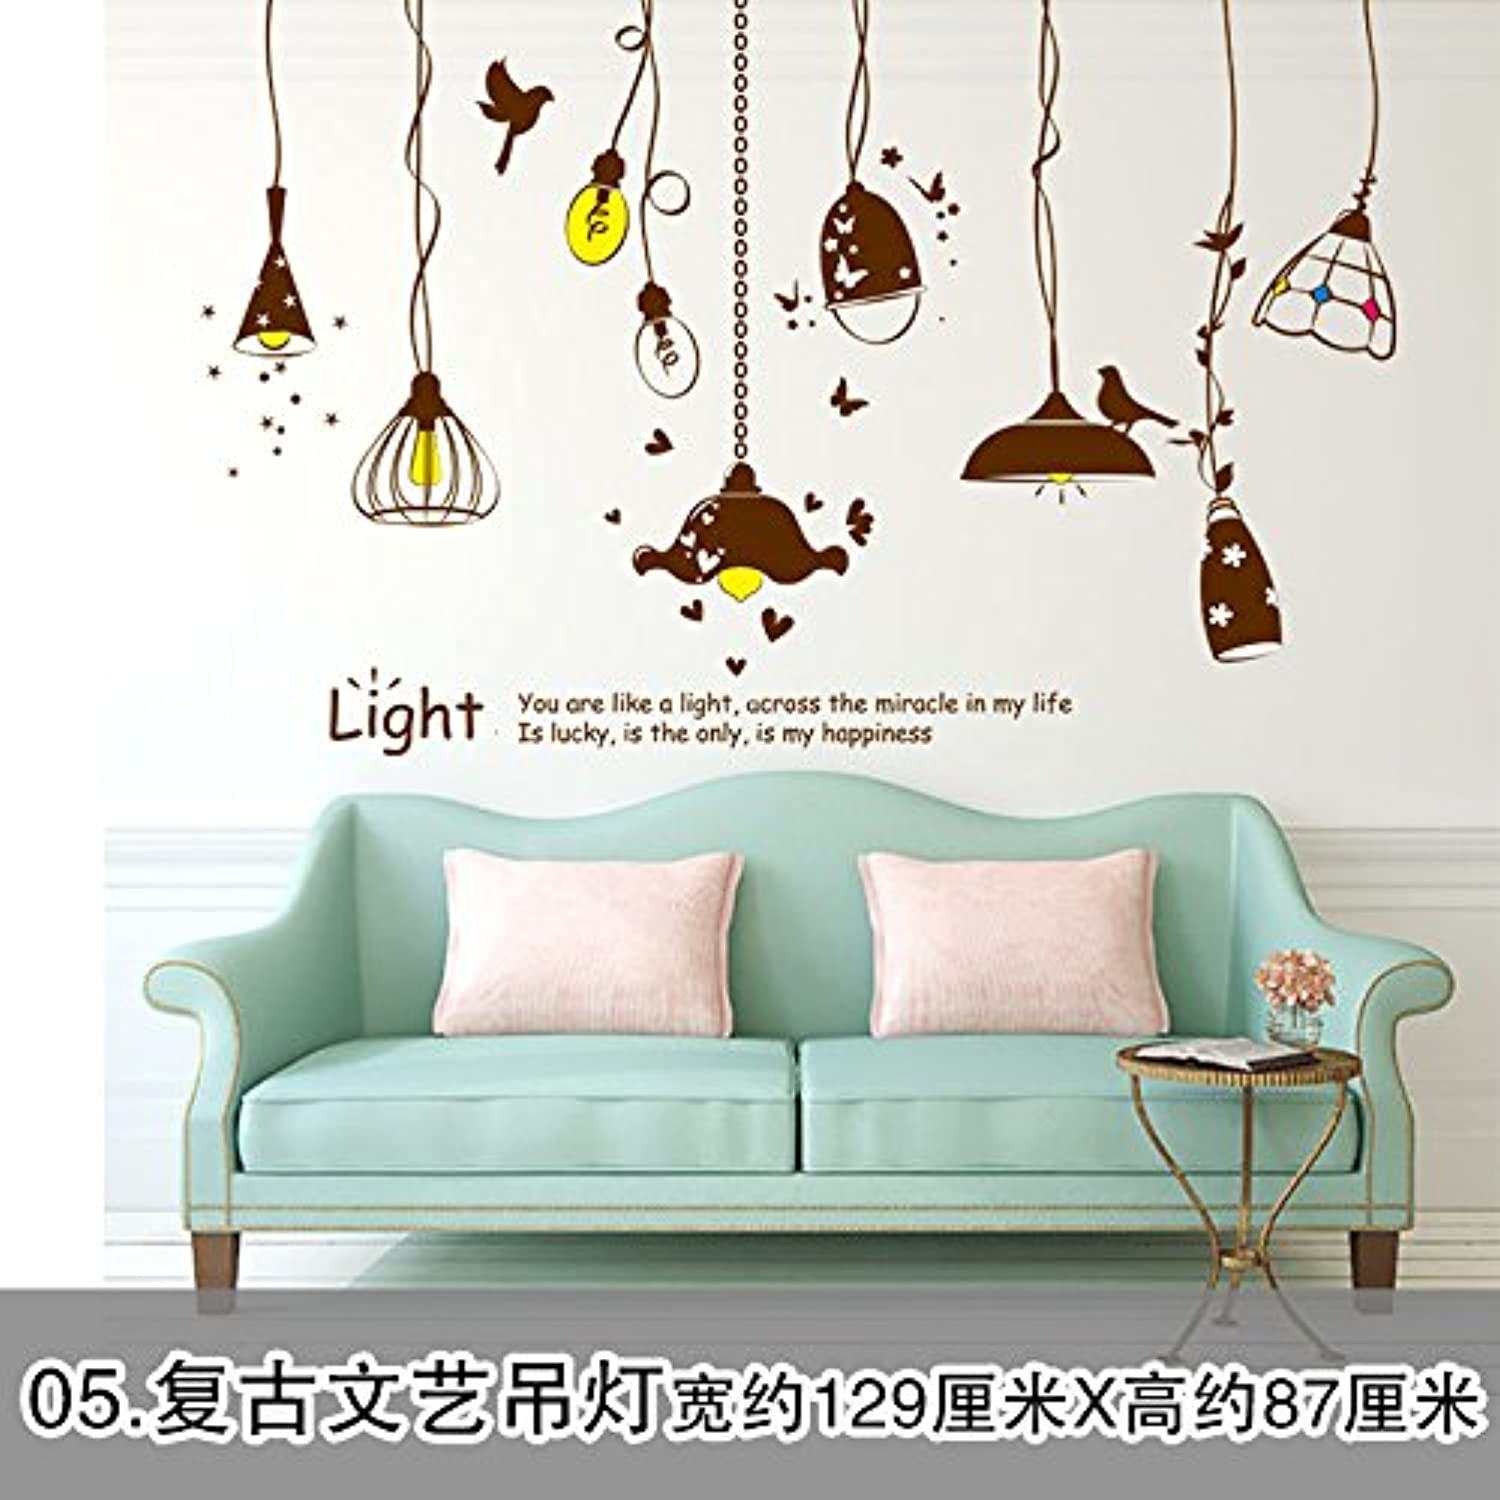 Znzbzt The bedrooms are Creative Personalized Wall Stickers 3D Posters Wall Decorations Posters self Adhesive, Chandeliers